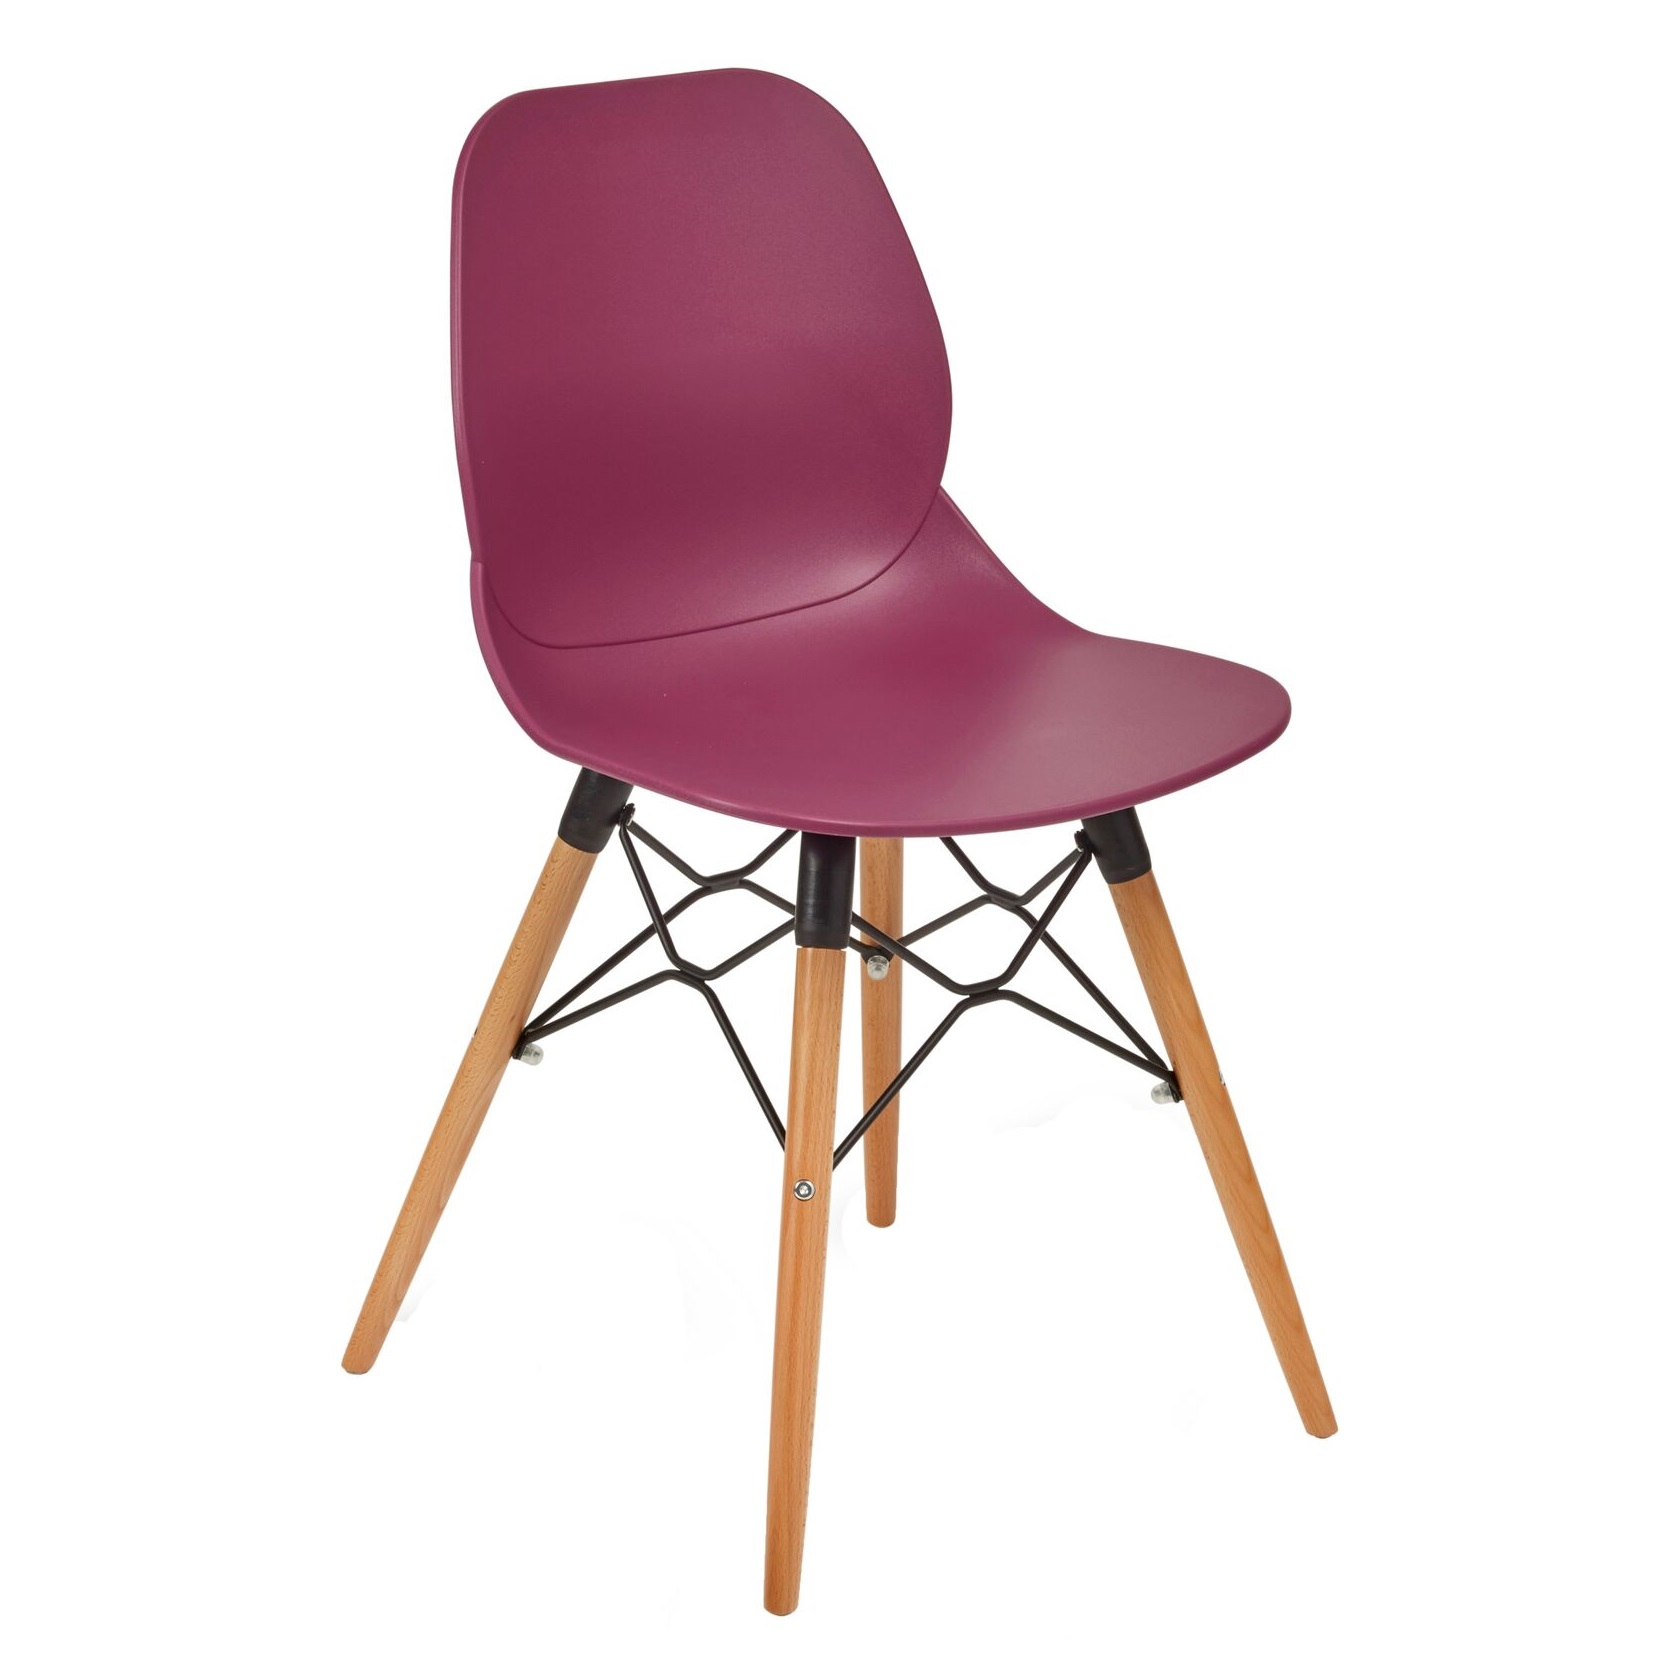 Linton killip cafe chairs 9 modern colours